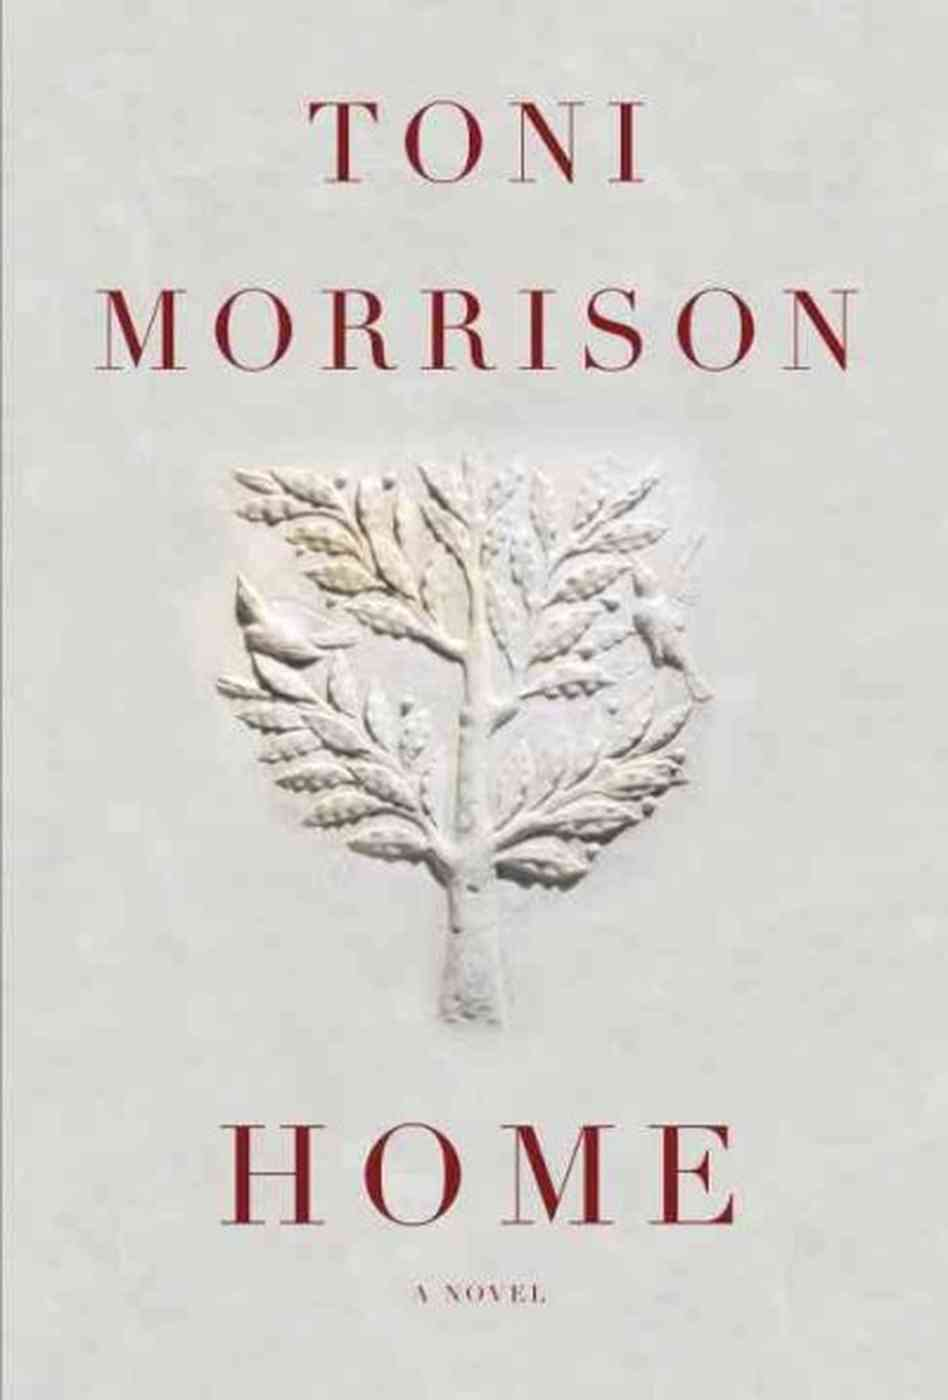 thesis on toni morrison novels